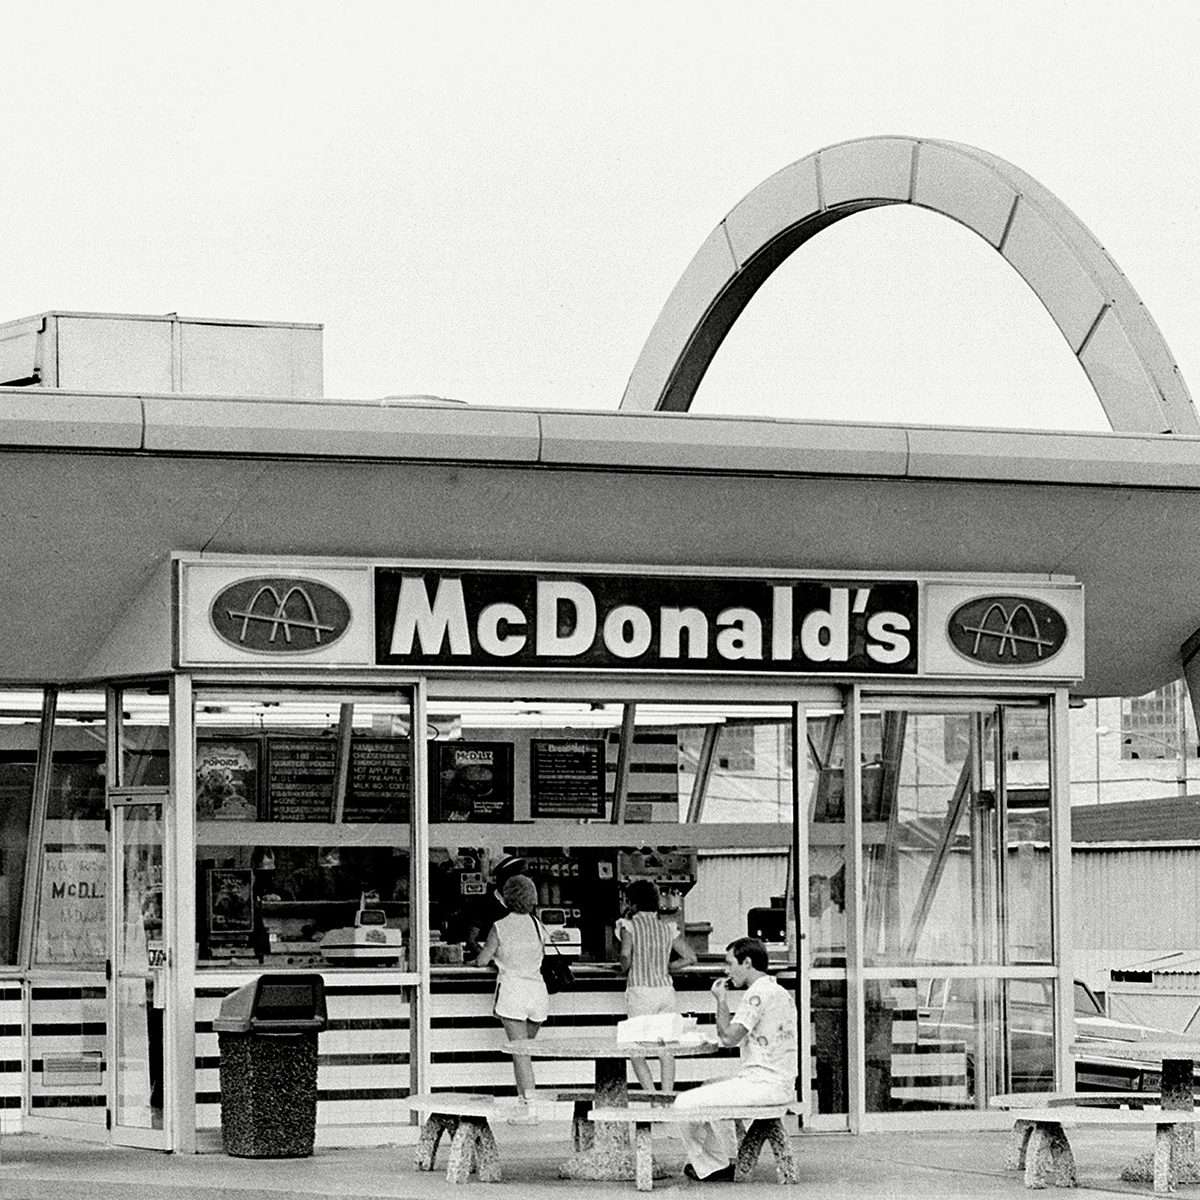 Old exterior of McDonald's